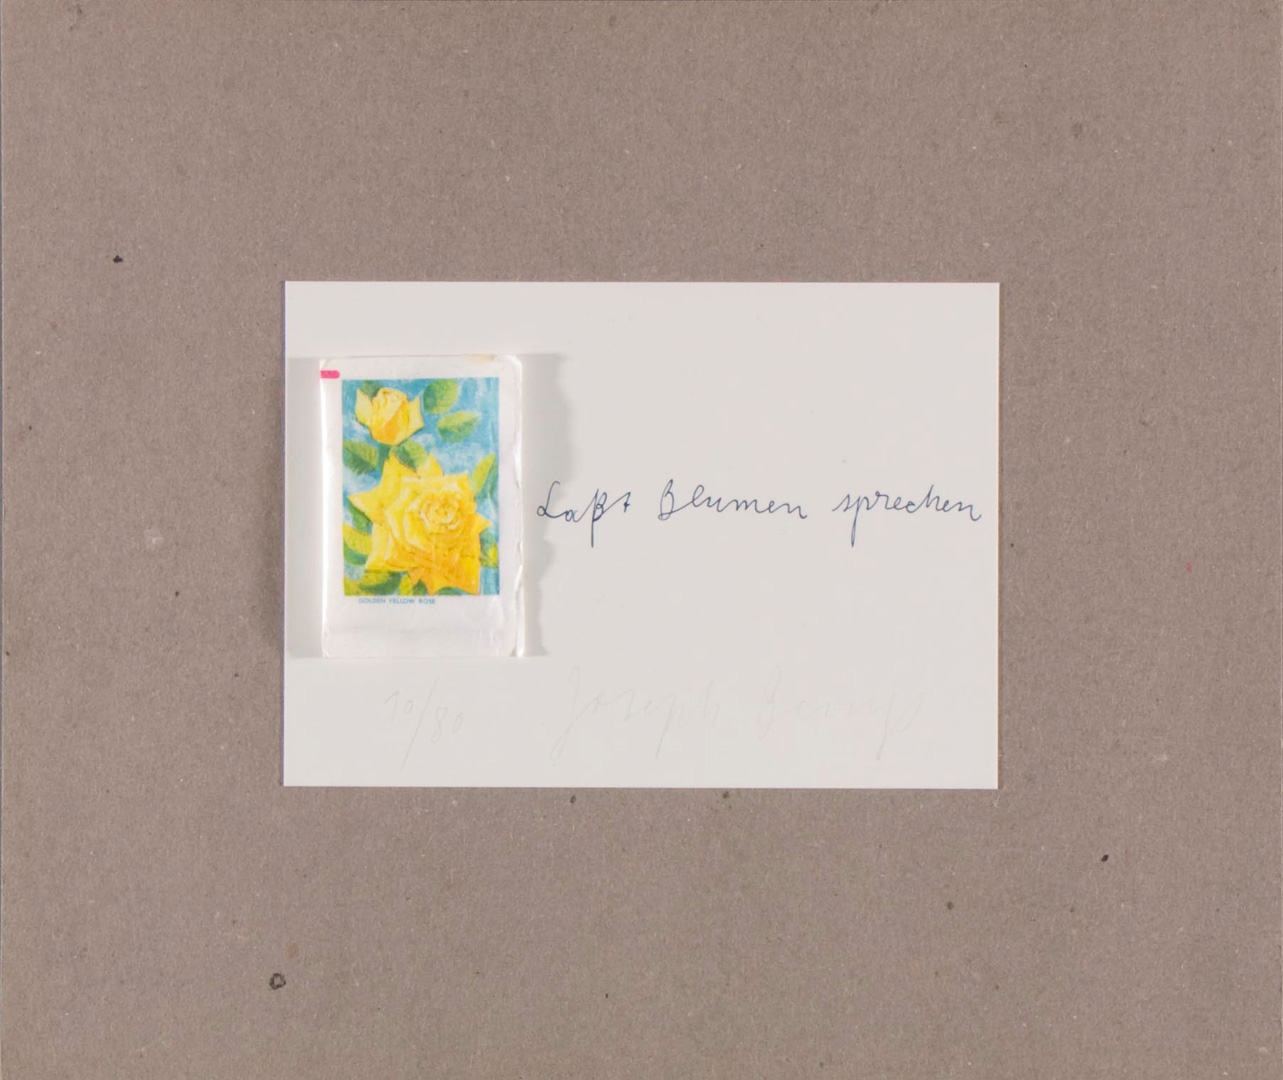 Joseph Beuys - Blumenzucker, 1974, postcard mounted on gray cardboard with attached sugar envelope